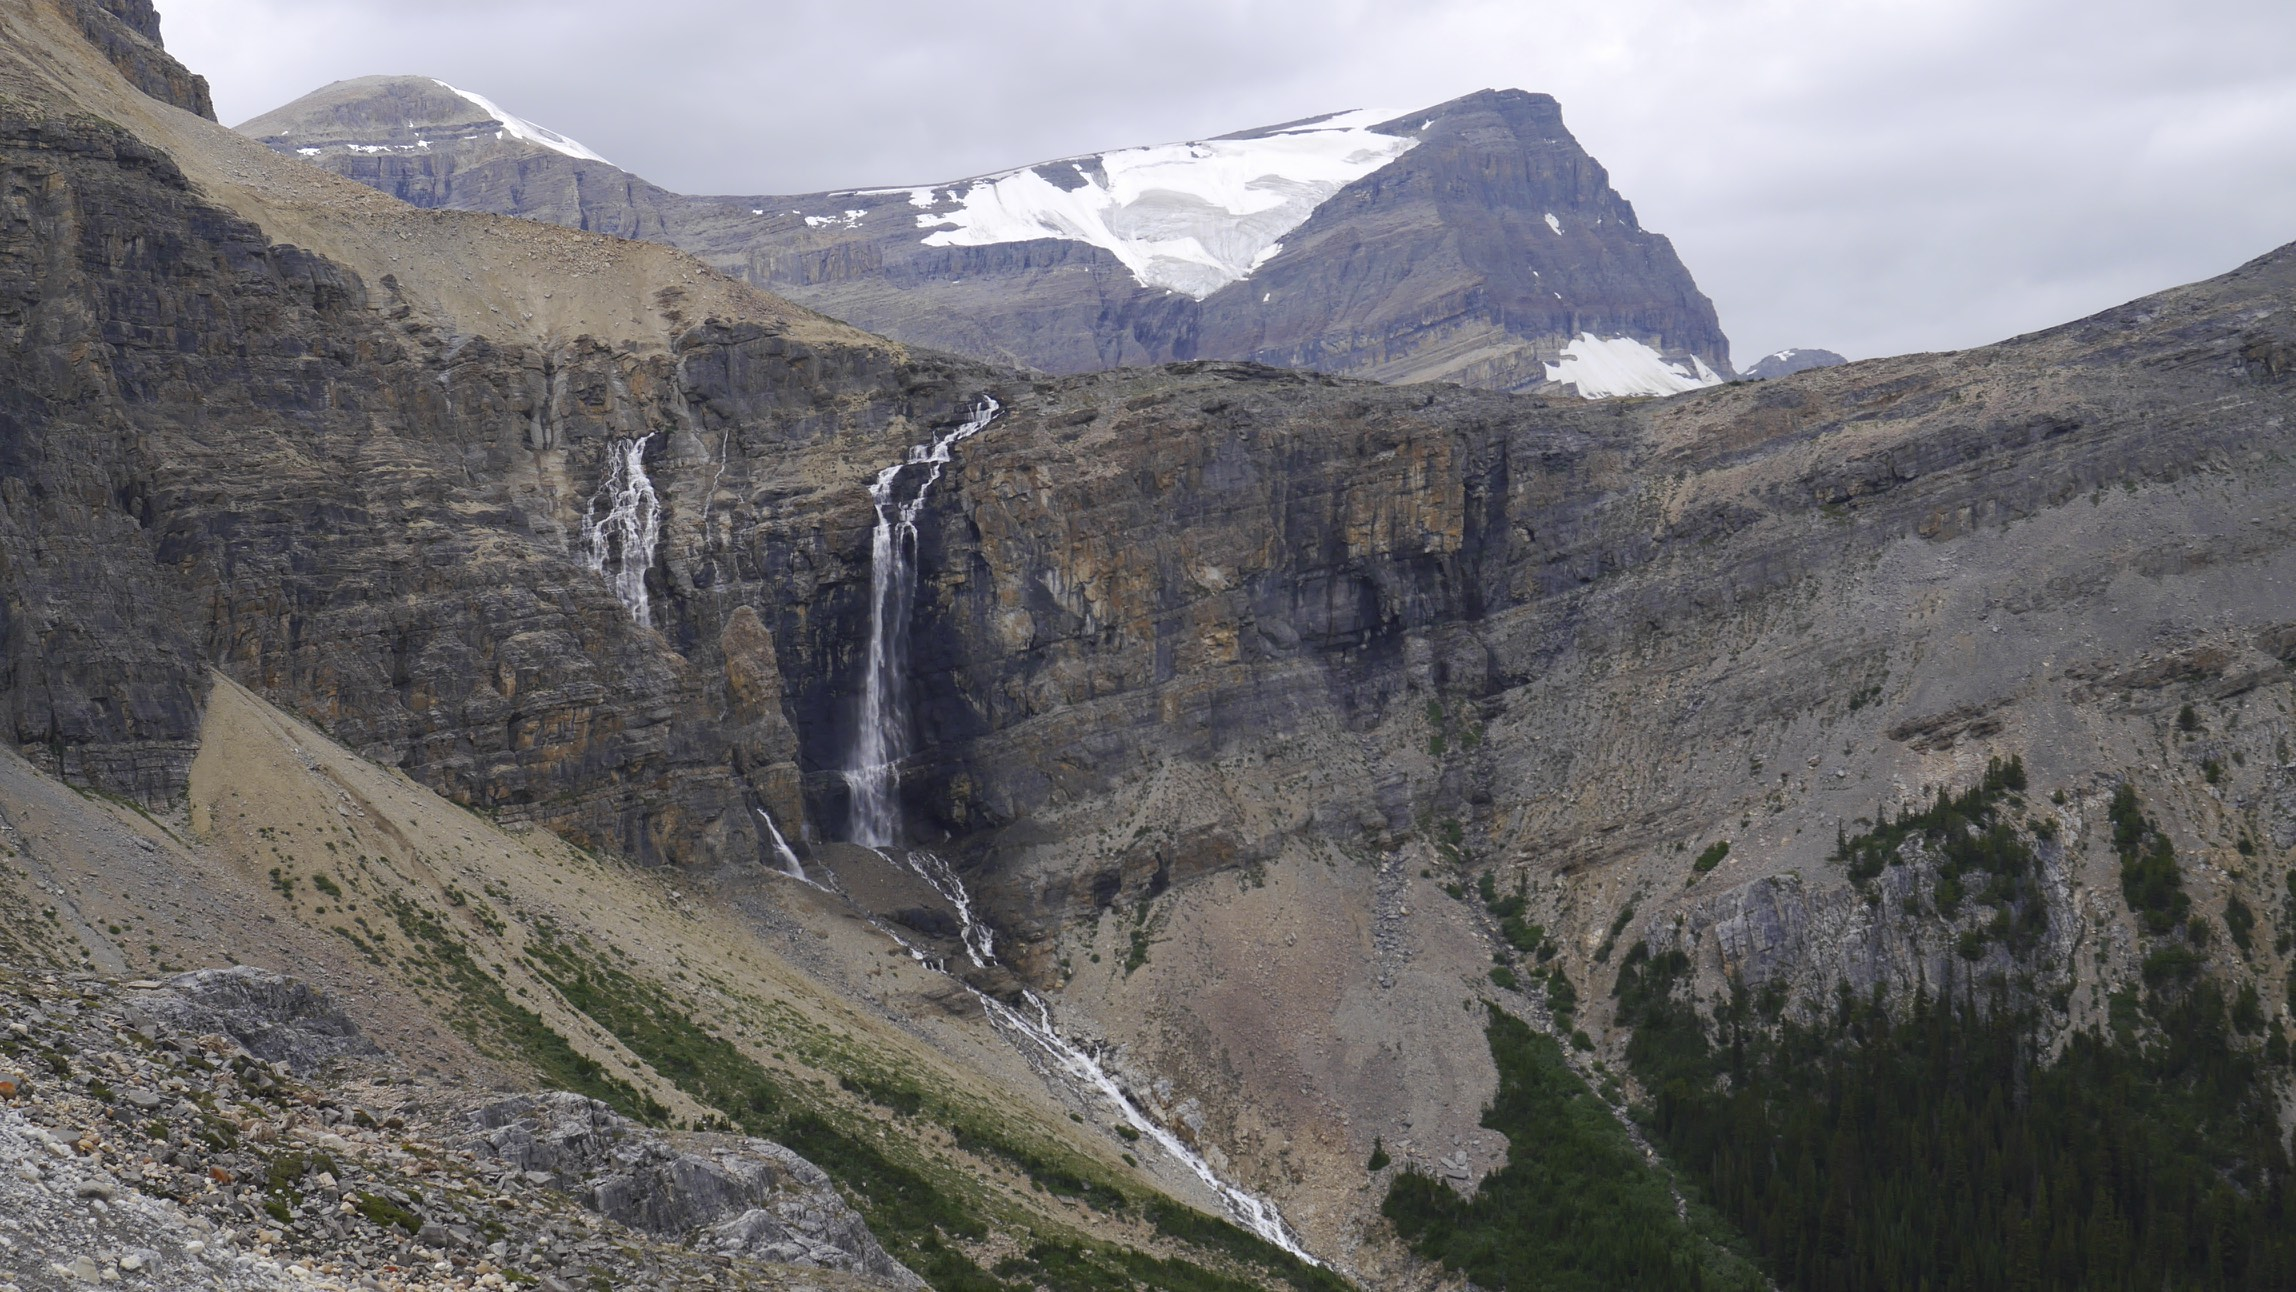 On the way to the Peyto Glacier